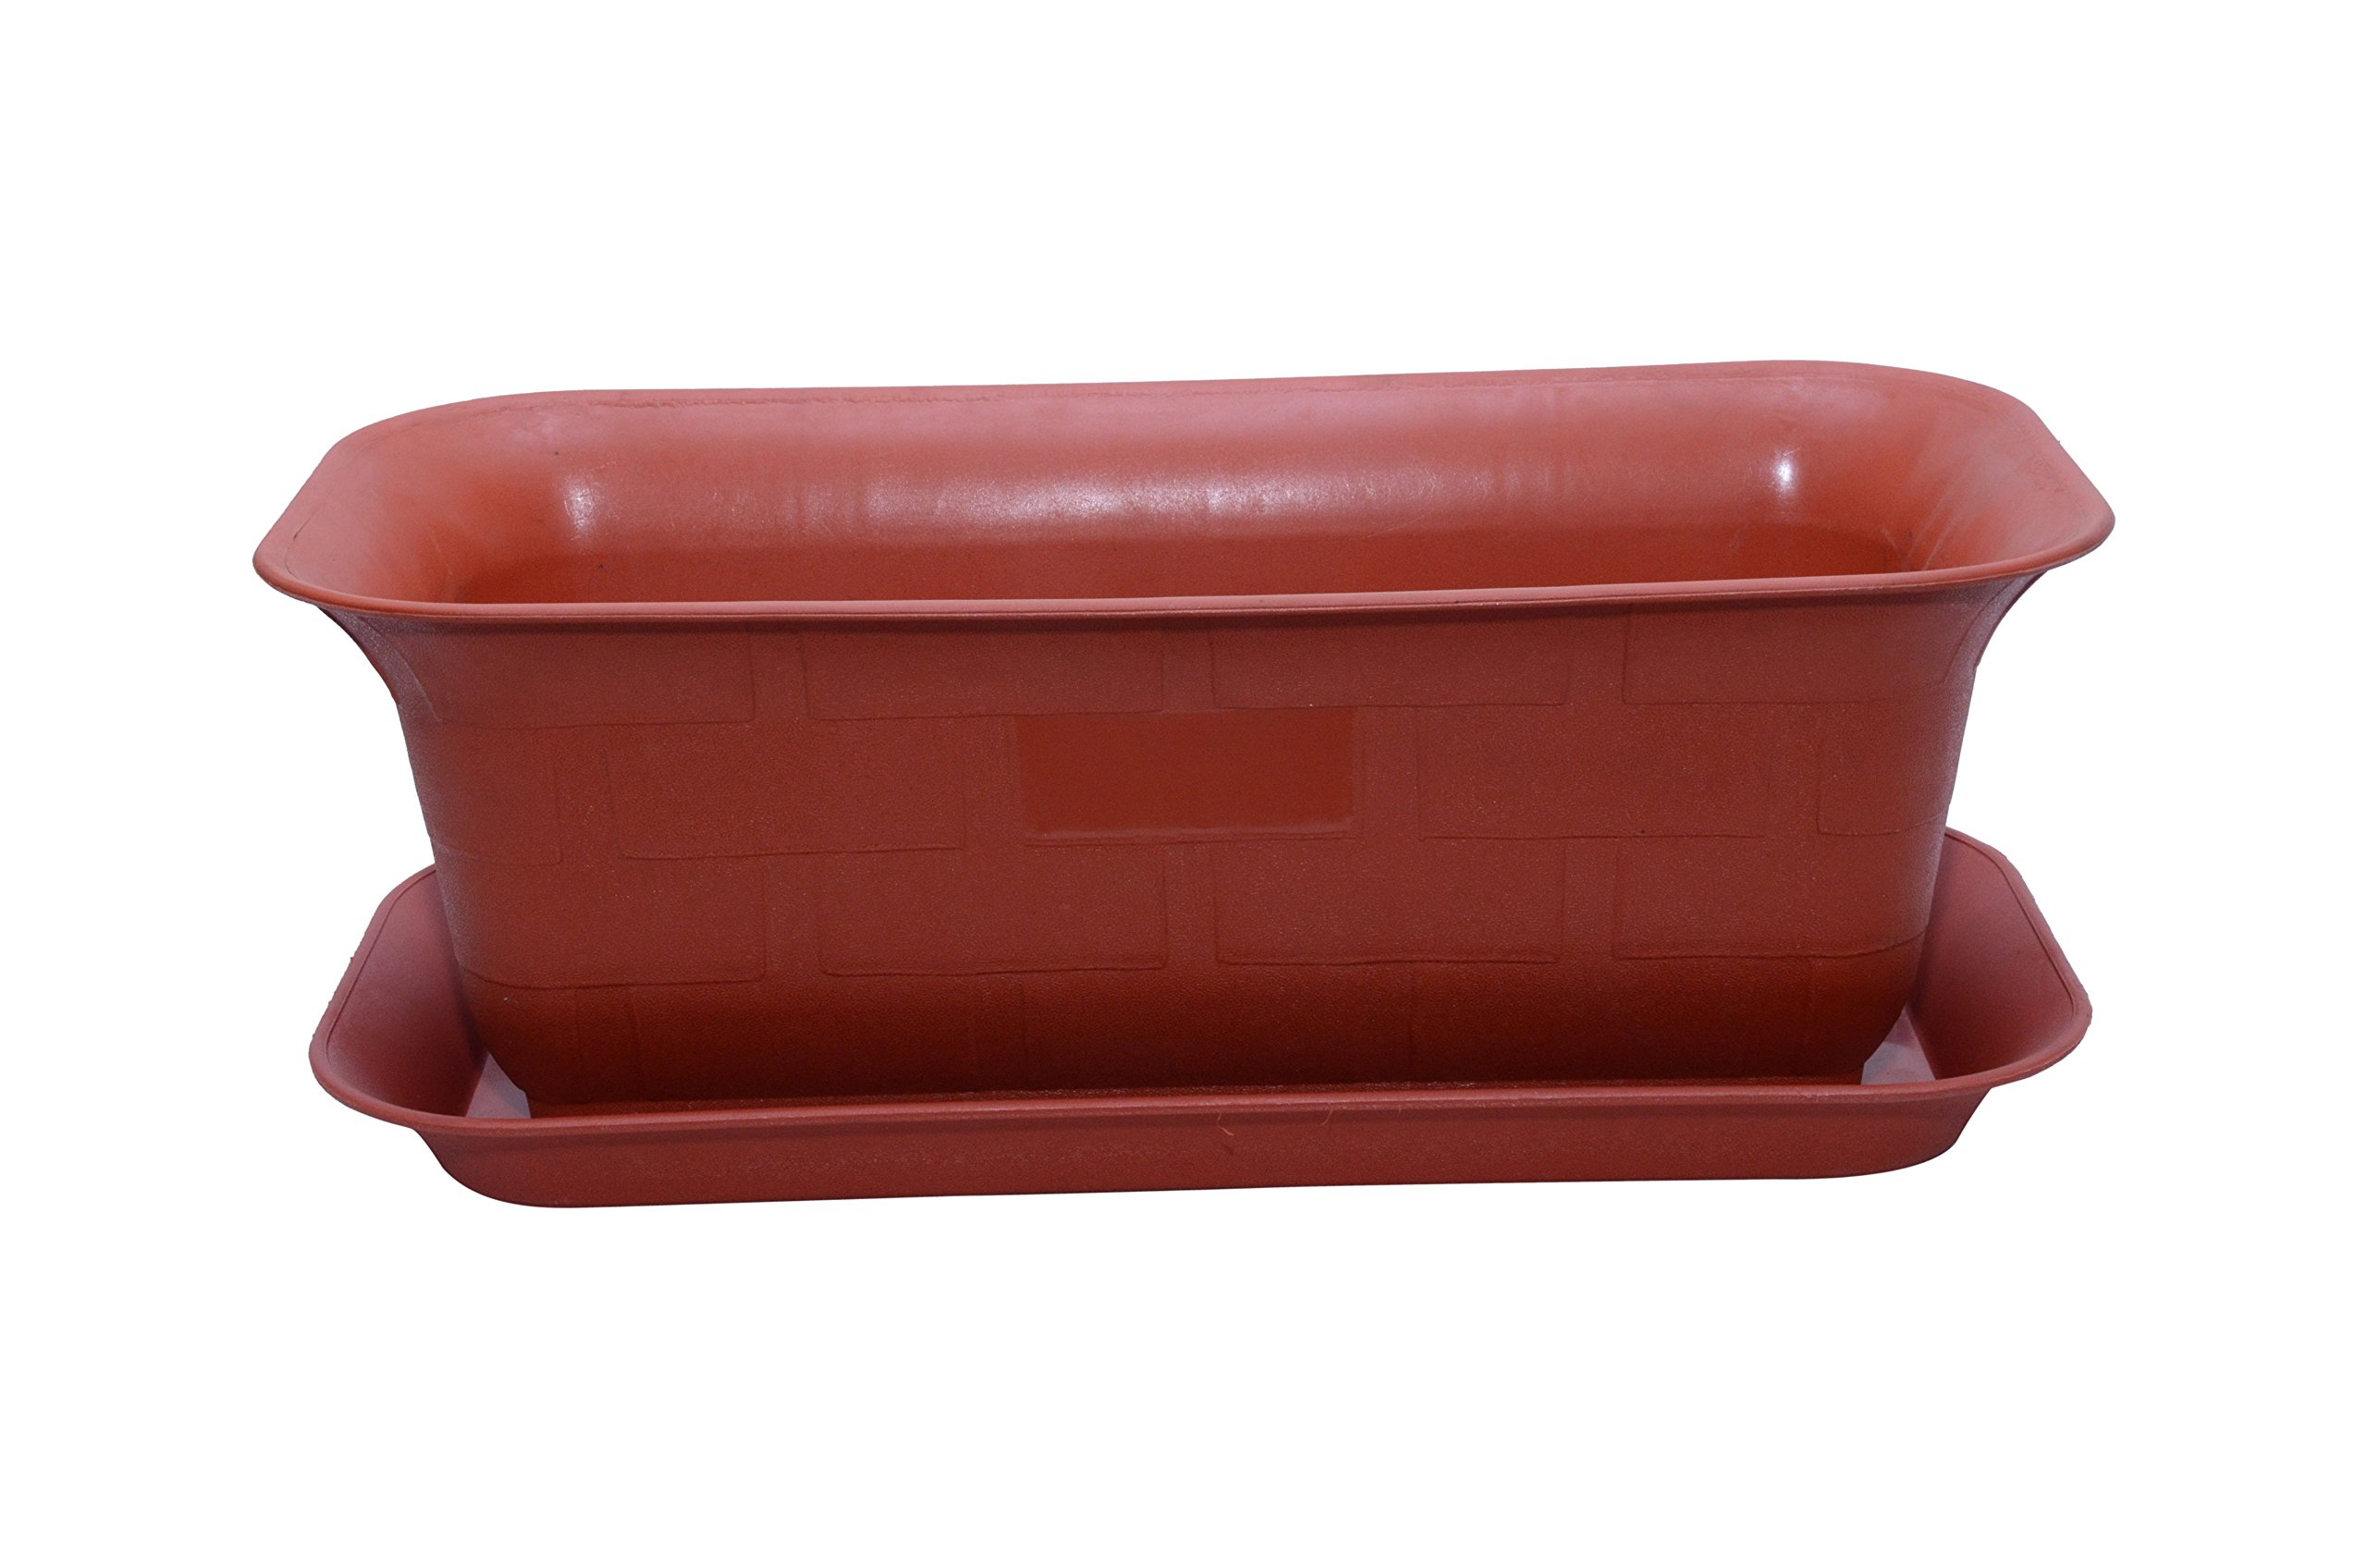 Gardens Need Window Rectangular Planter with Bottom Tray Set (20-inch, Terracotta, Pack of 3 Sets) product image